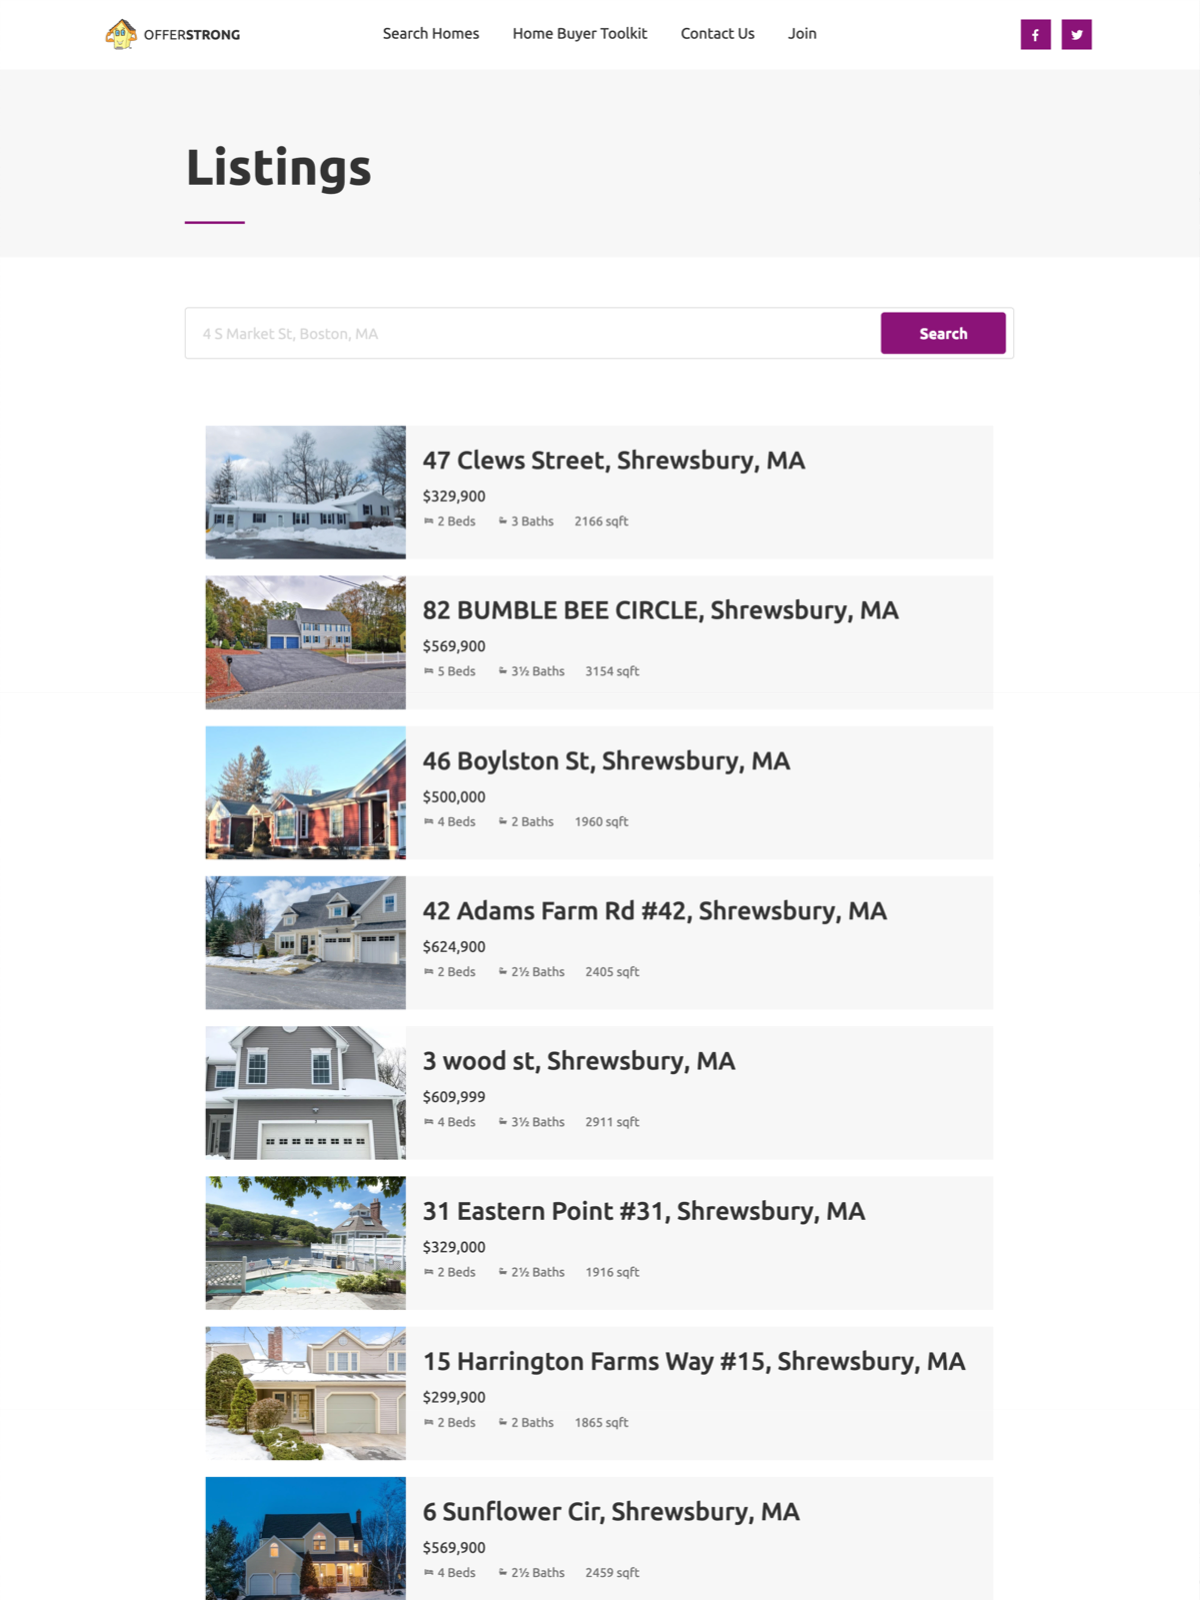 OfferStrong listings page, showing homes within the area